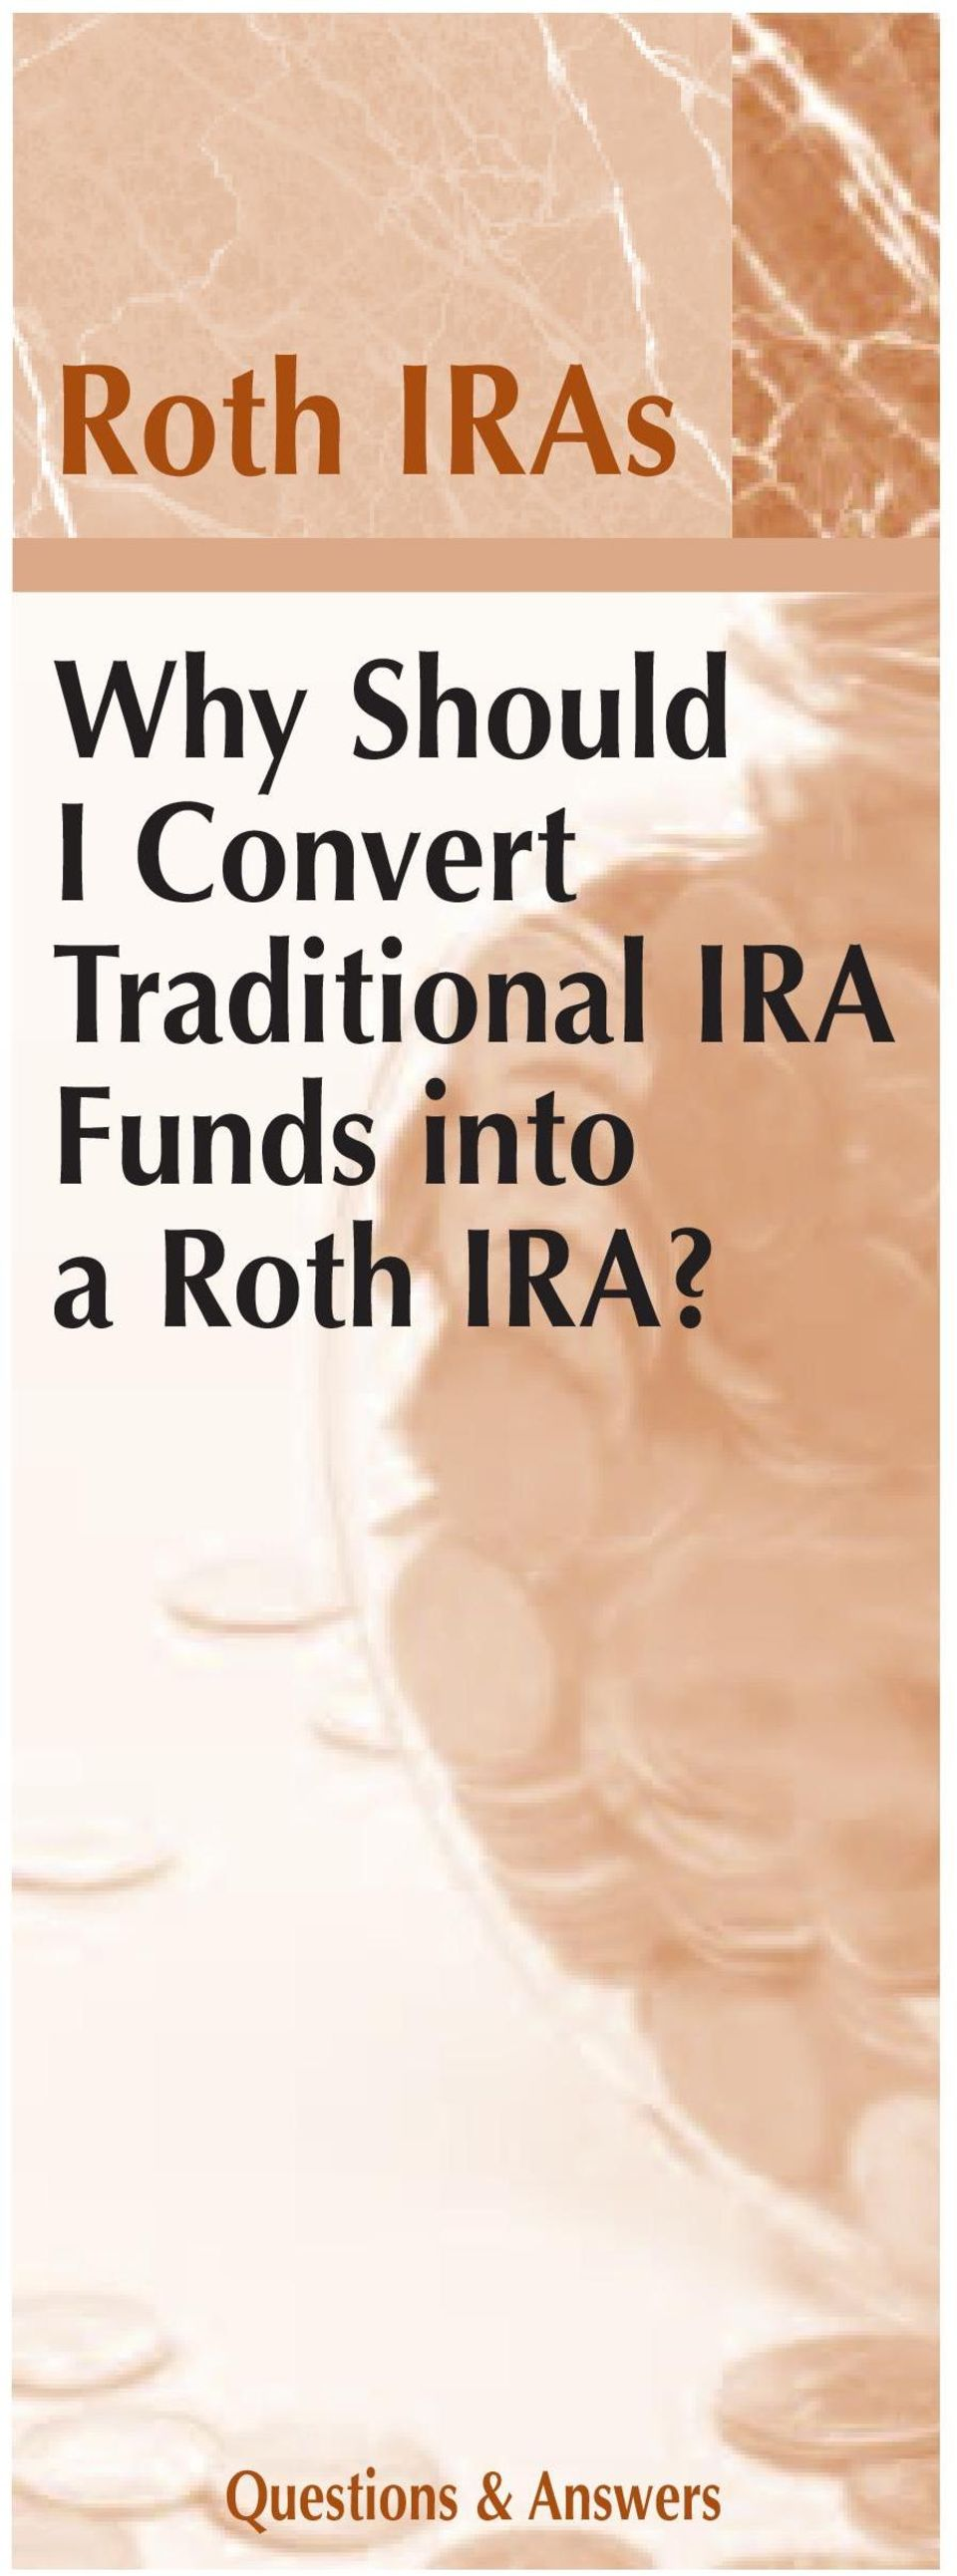 IRA Funds into a Roth